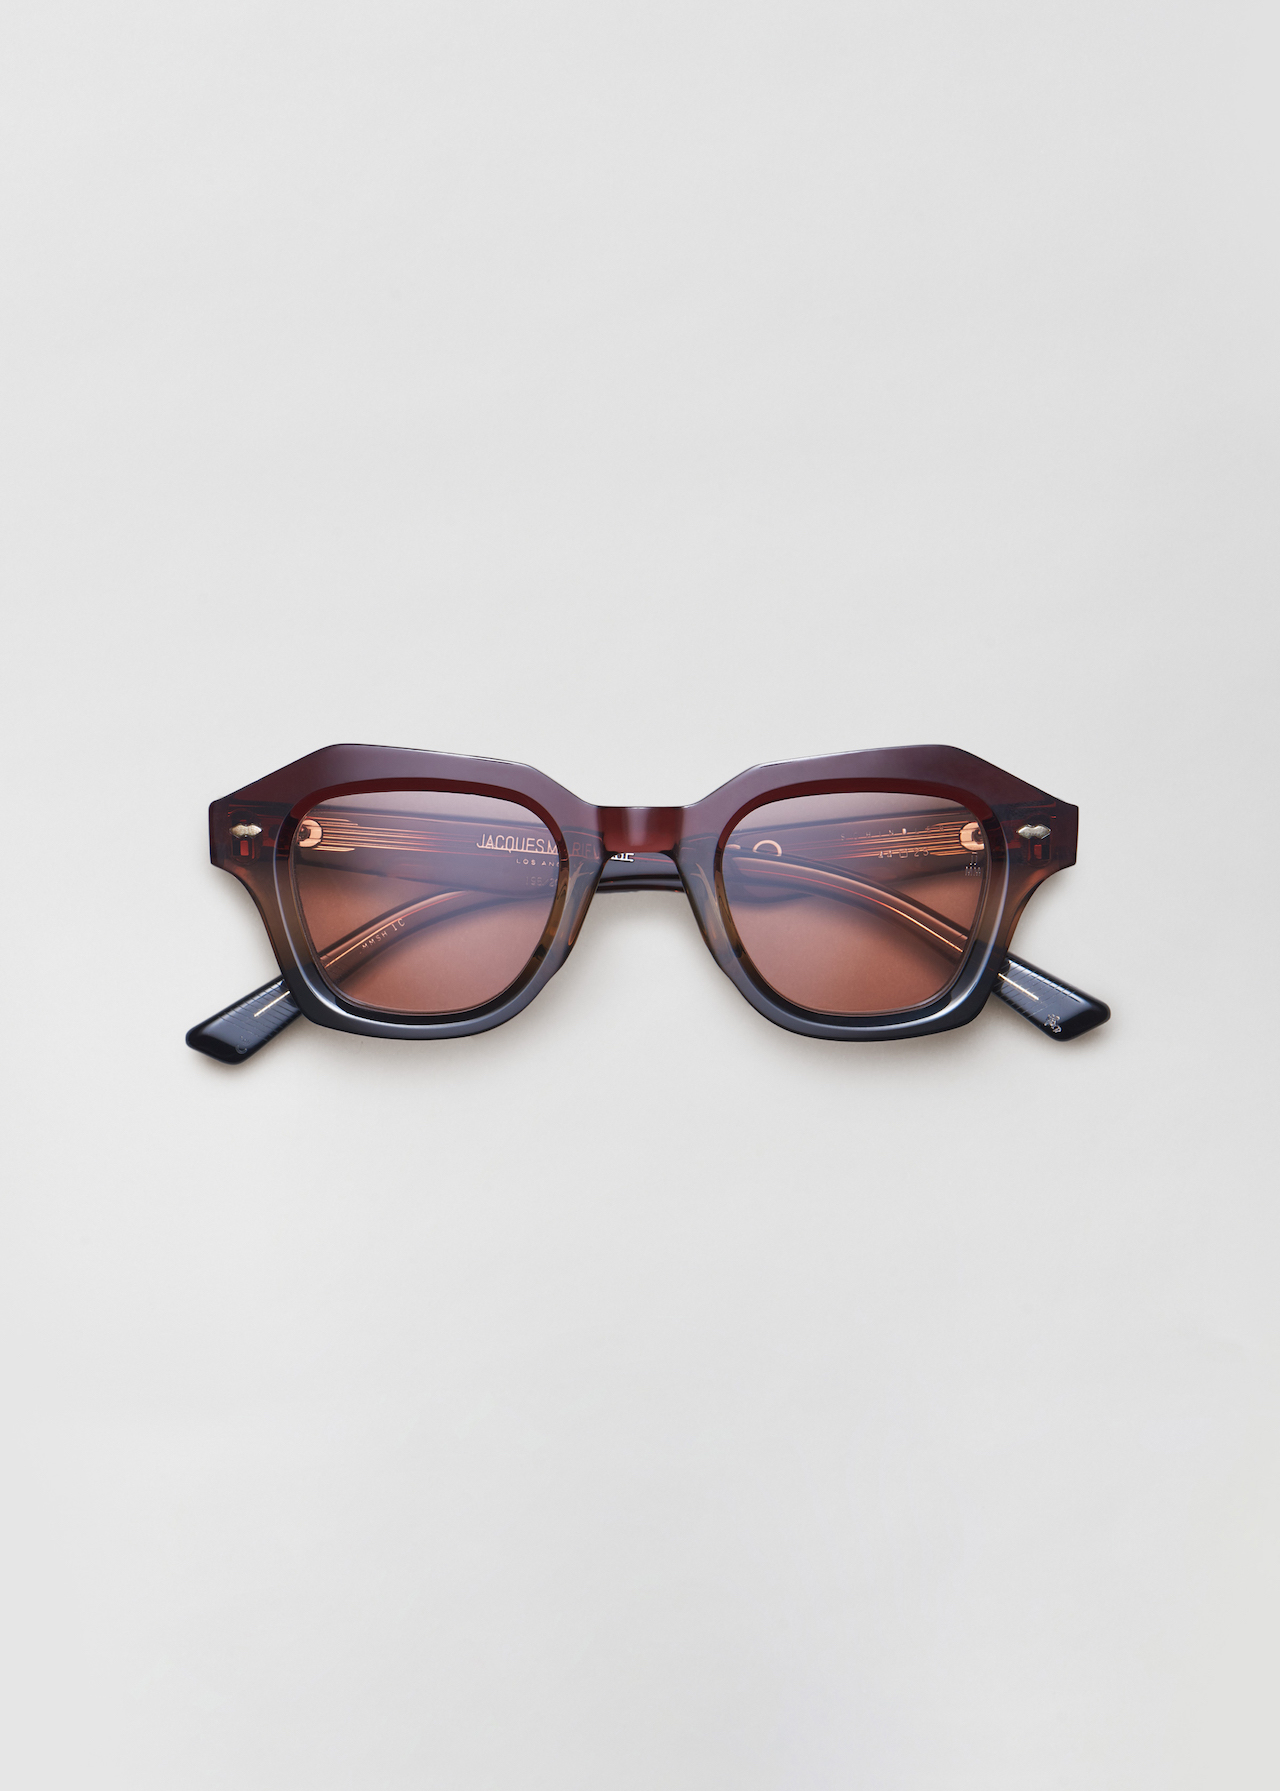 Schindler Sunglasses in Lava in Empire by Co Collections